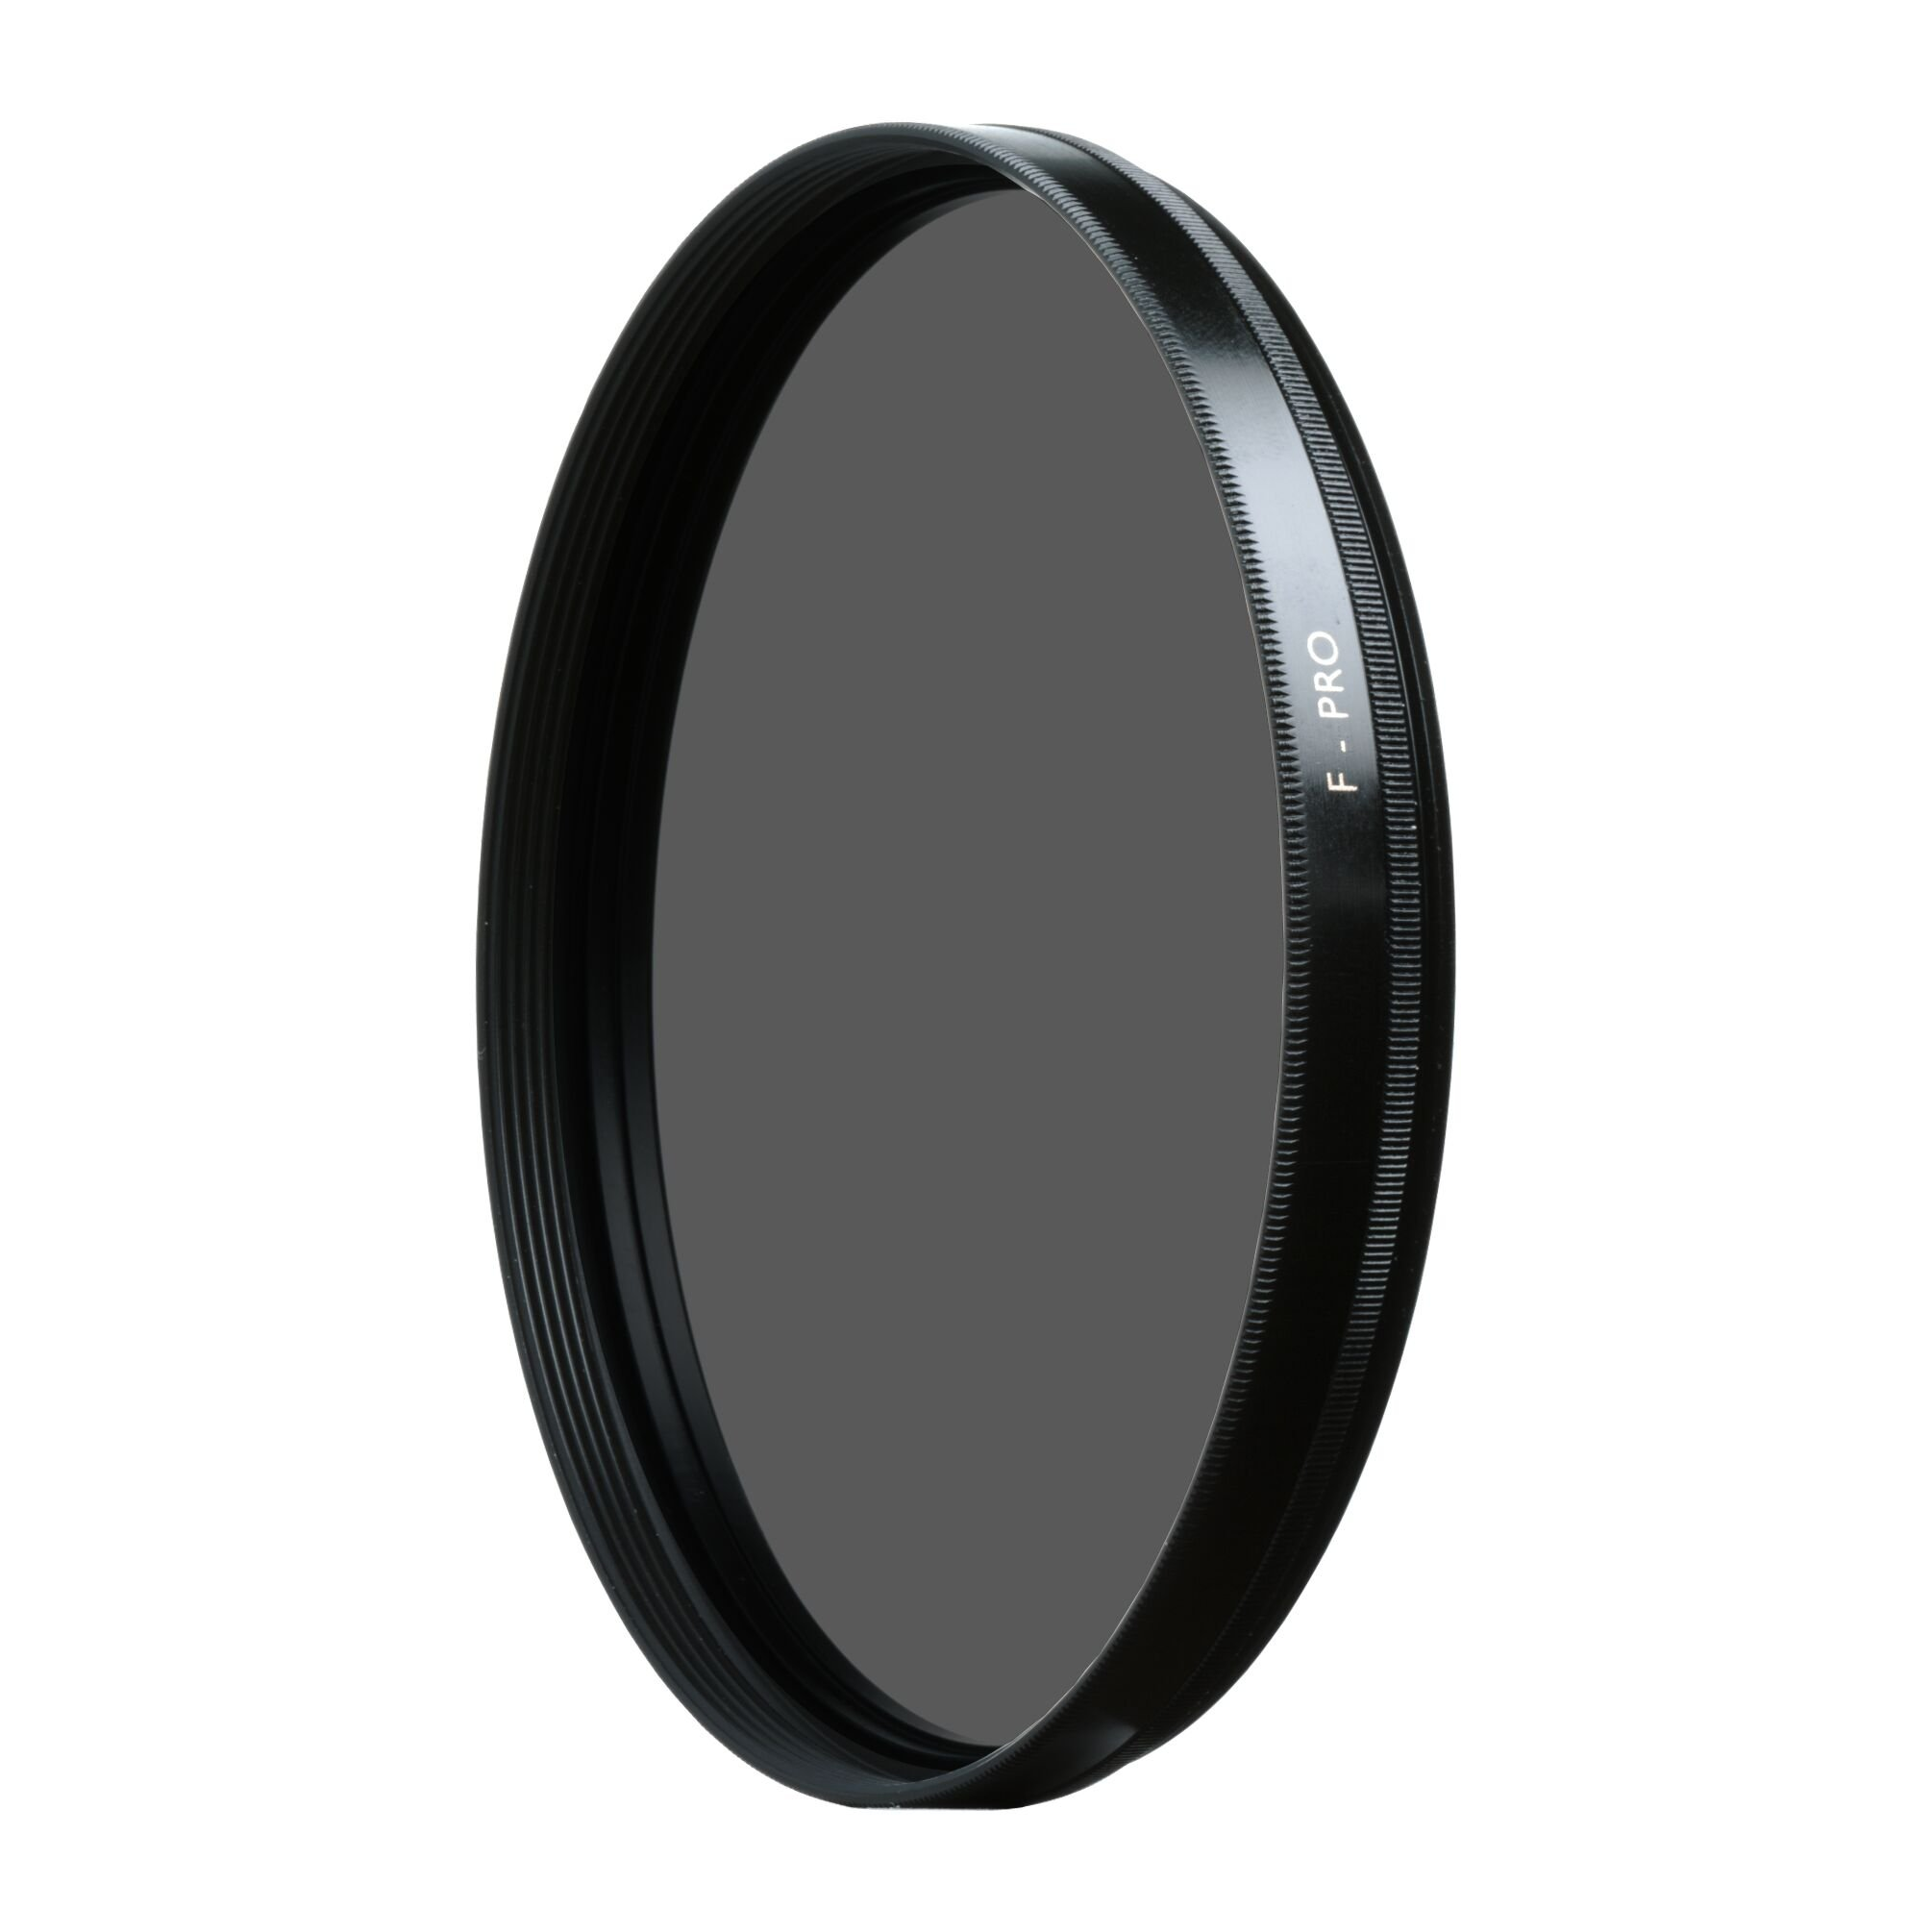 B+W 39mm Circular Polarizer with Single Coating